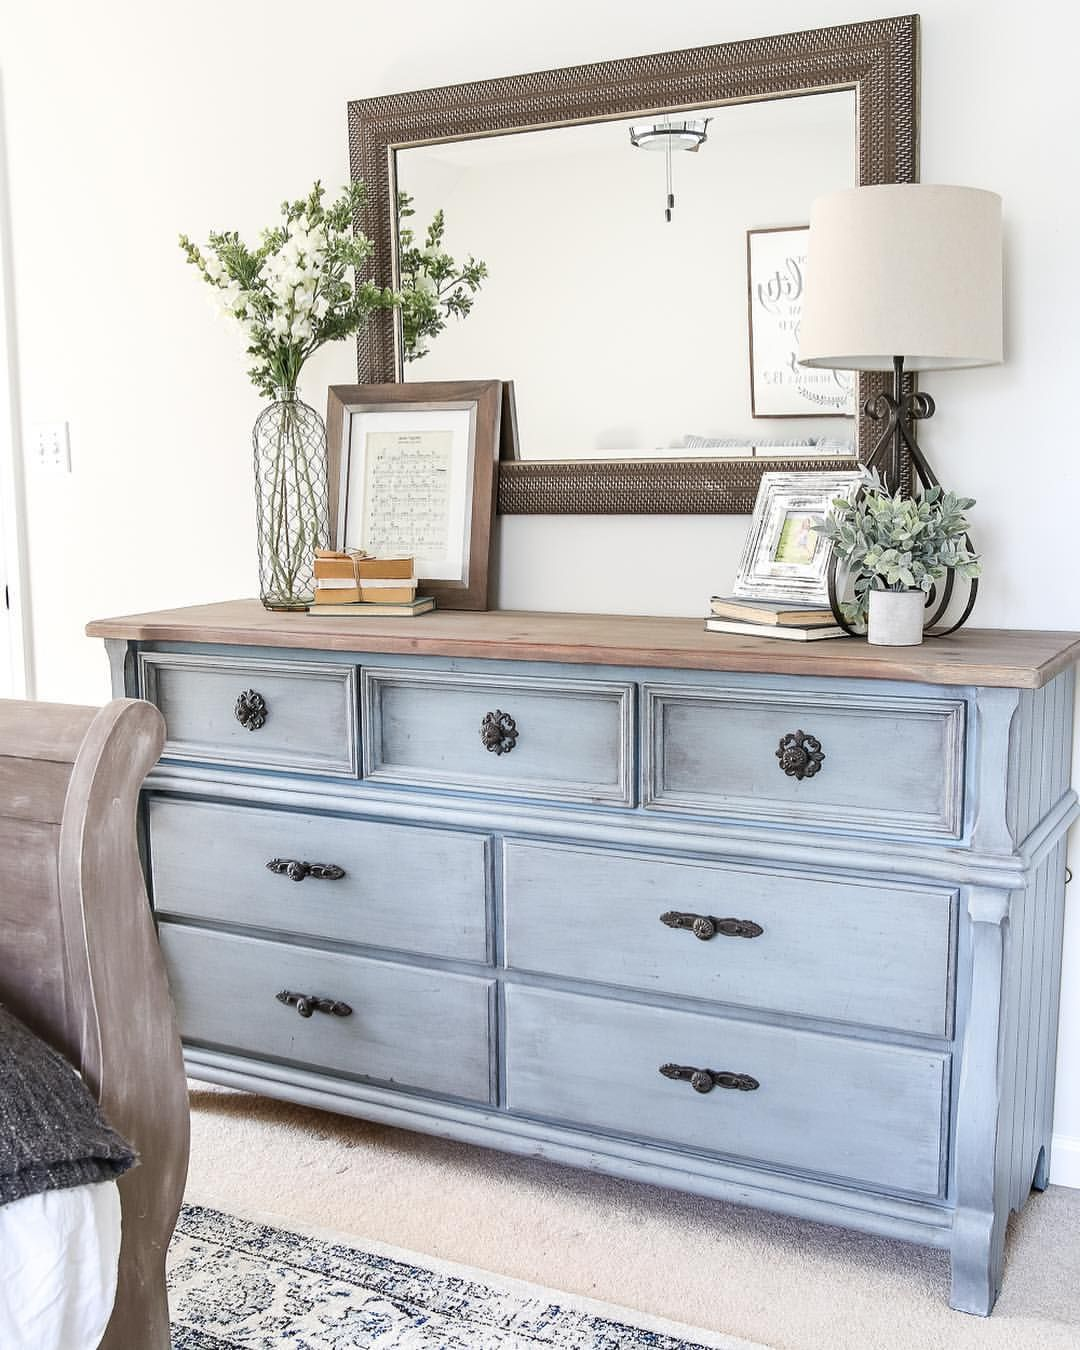 Pin By Jen Goose On Home Decorating